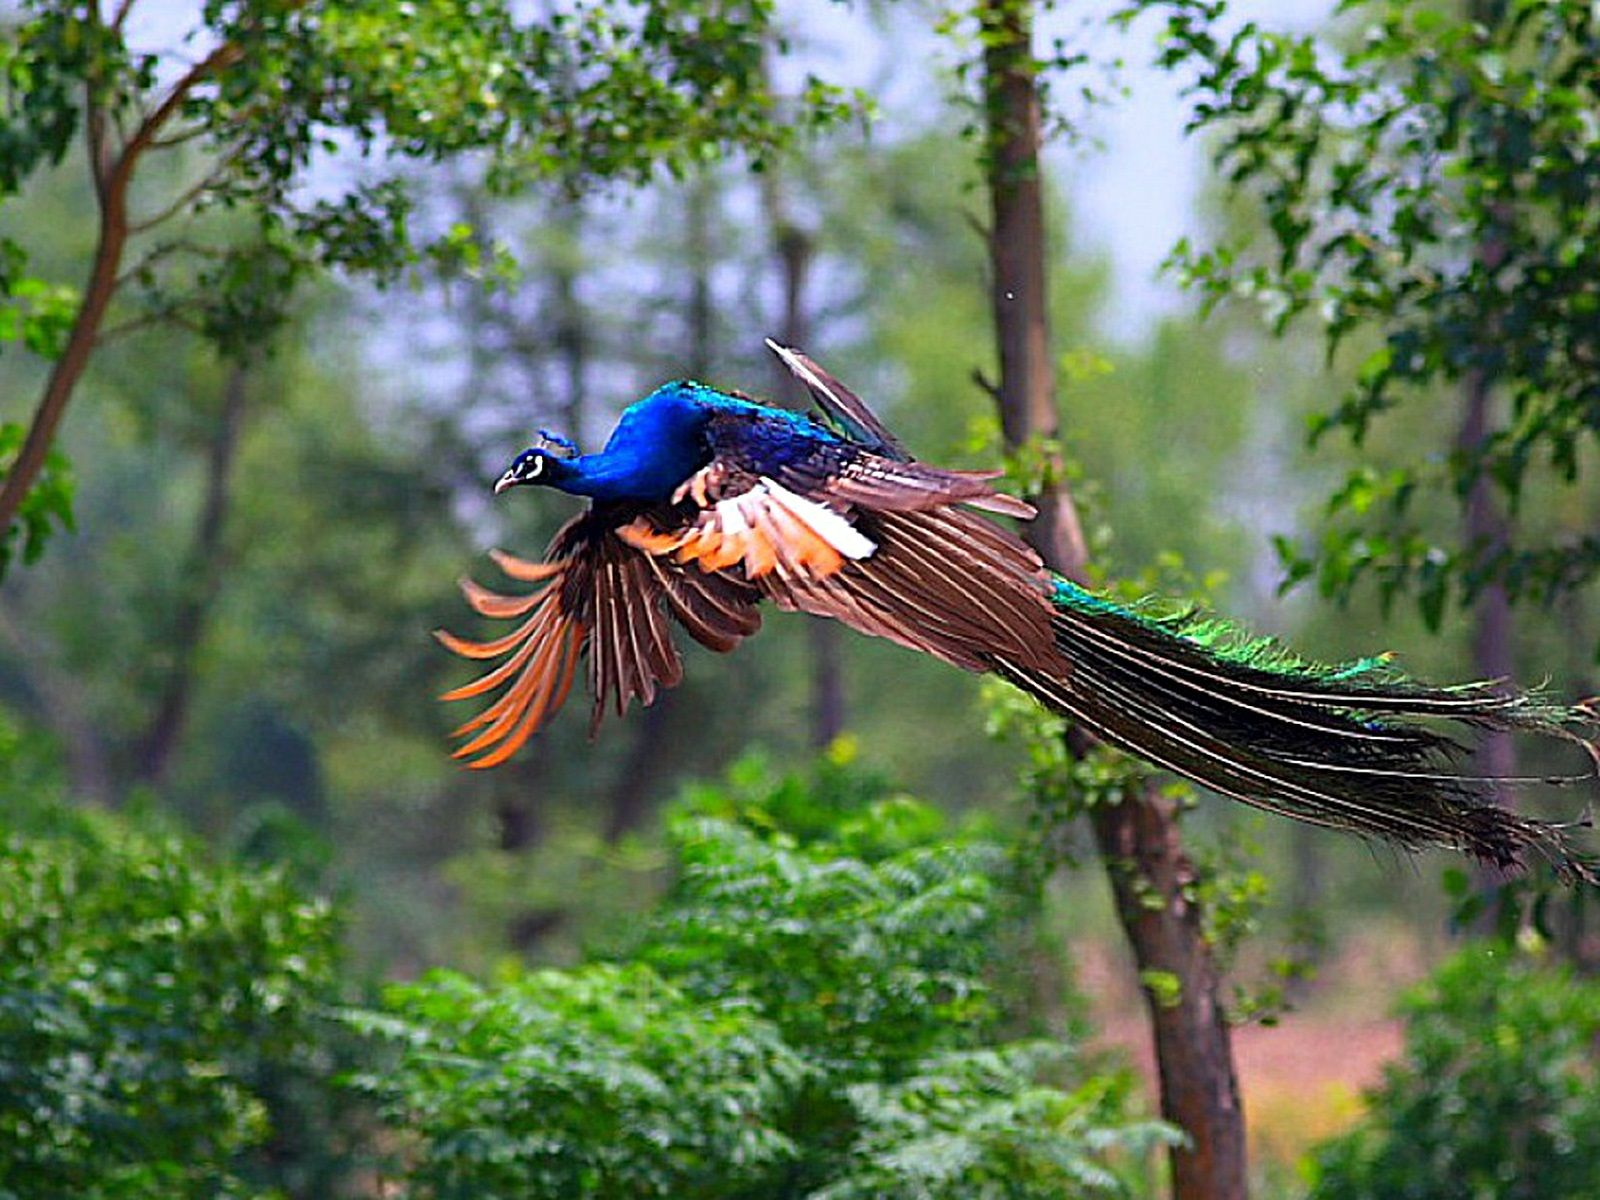 Best Quality Images Of 3d Peacock Wallpaper You Can Simply Visit To The Official Website Of The 3d Hd Wallpaper To Downl Peacock Flying Cute Animals Pet Birds